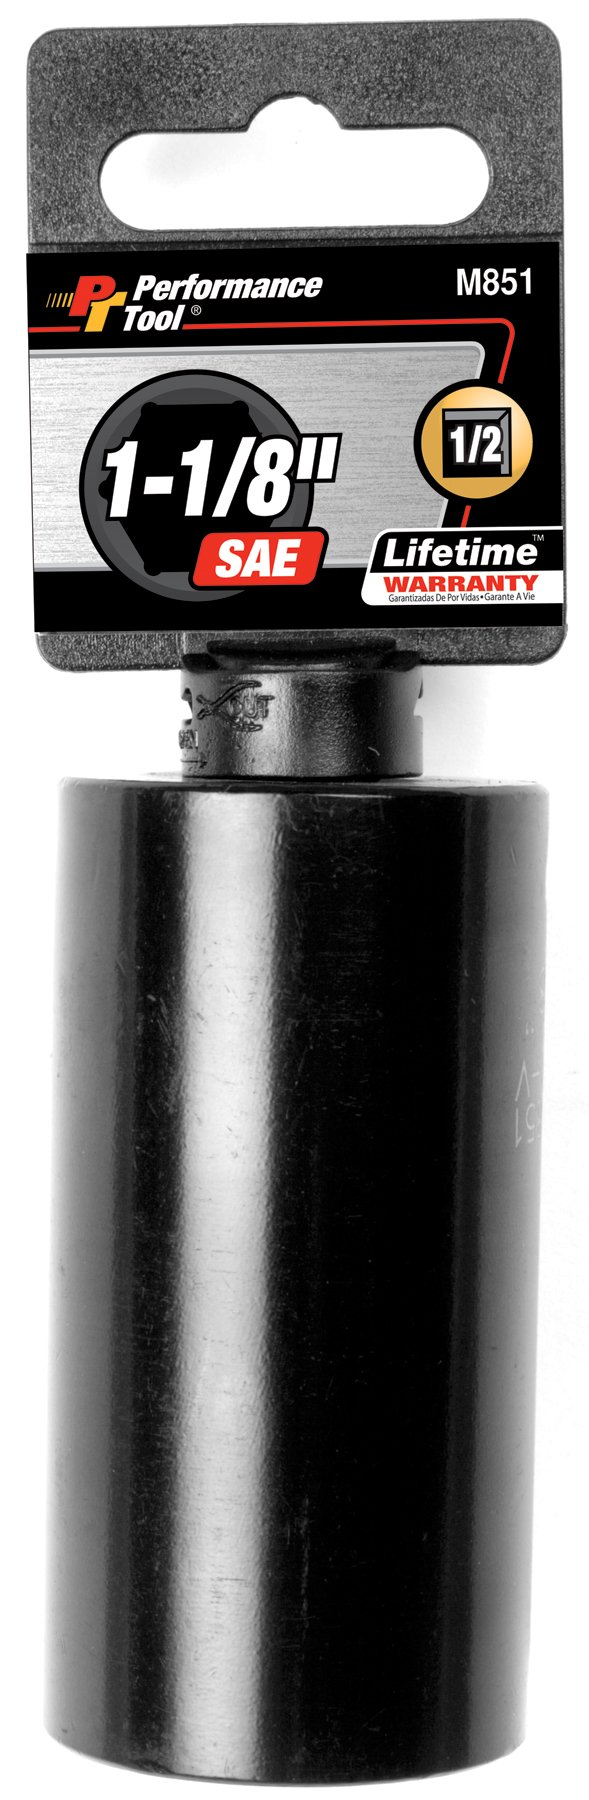 Performance Tool M851 1/2'' Dr. 6-Point Impact Socket, 1-1/8''